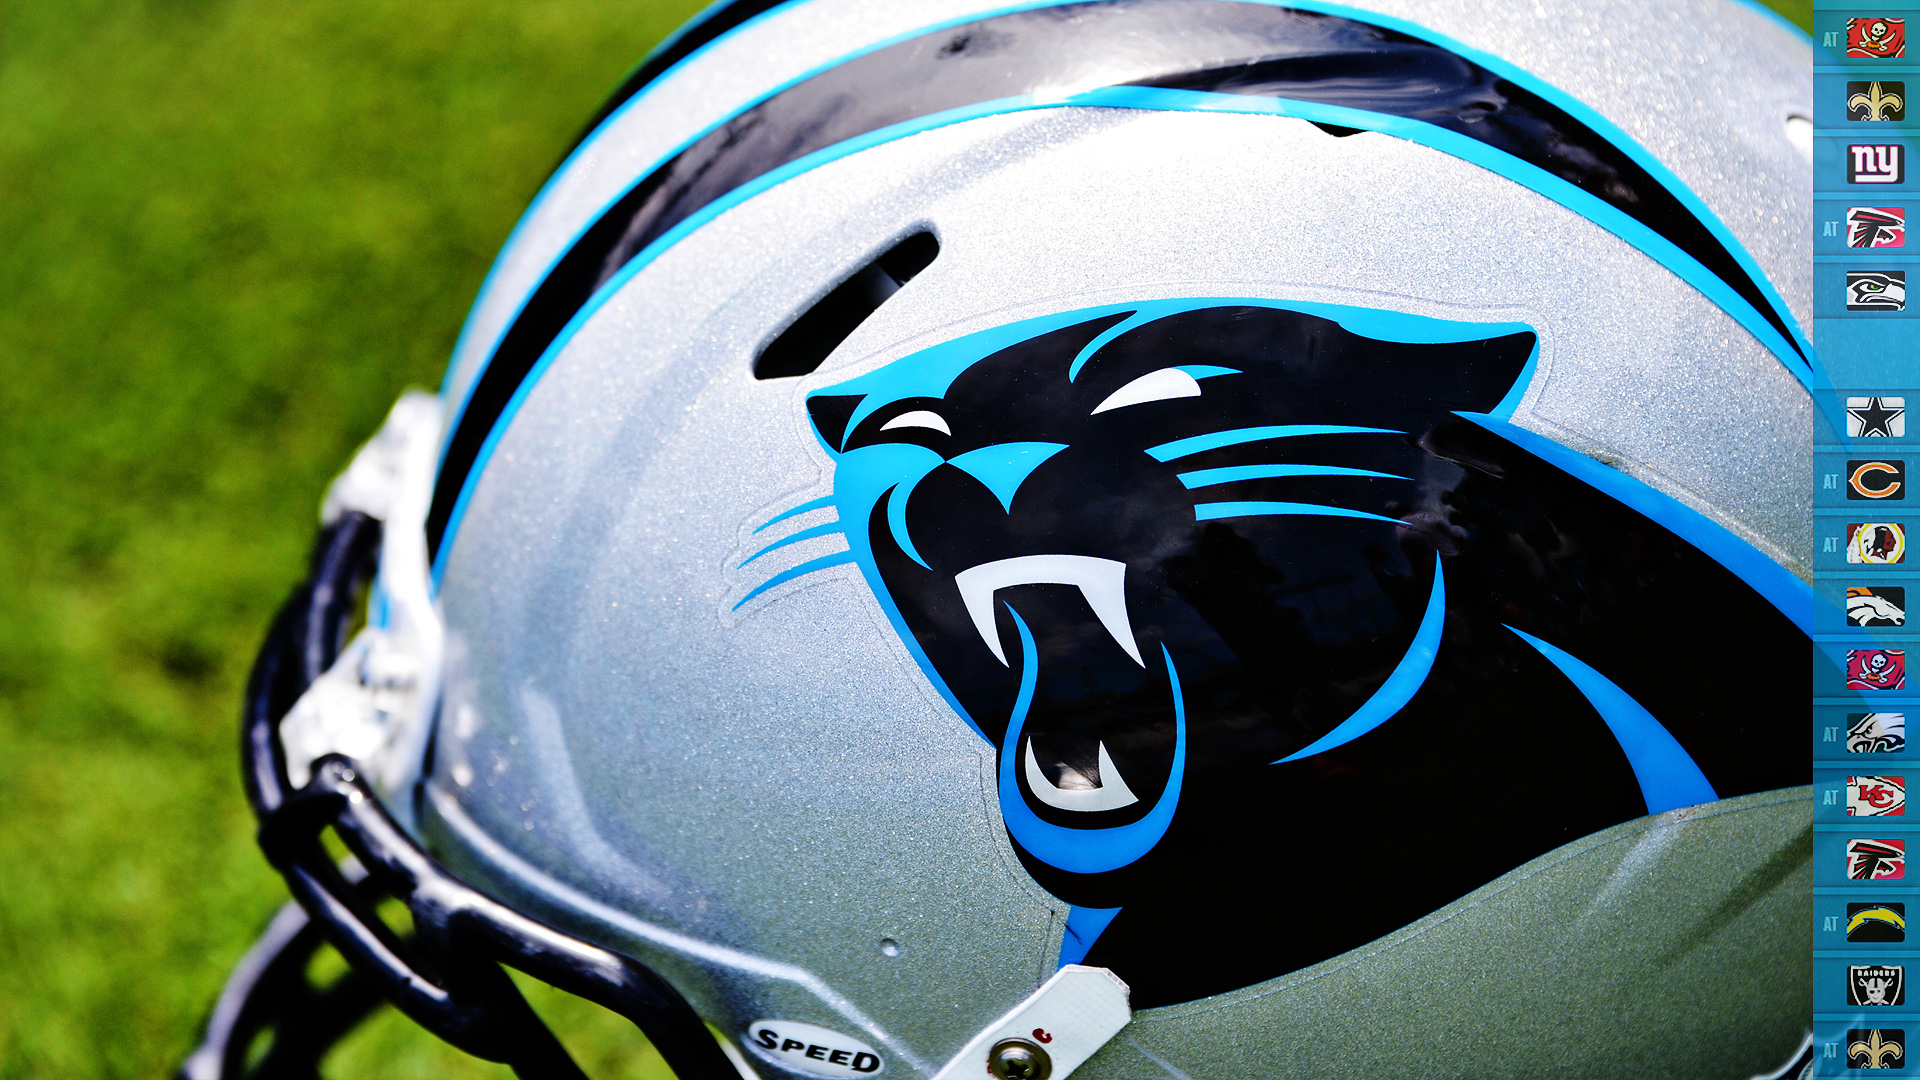 Carolina Panthers Helmet Wallpaper for Phones and Tablets 1920x1080